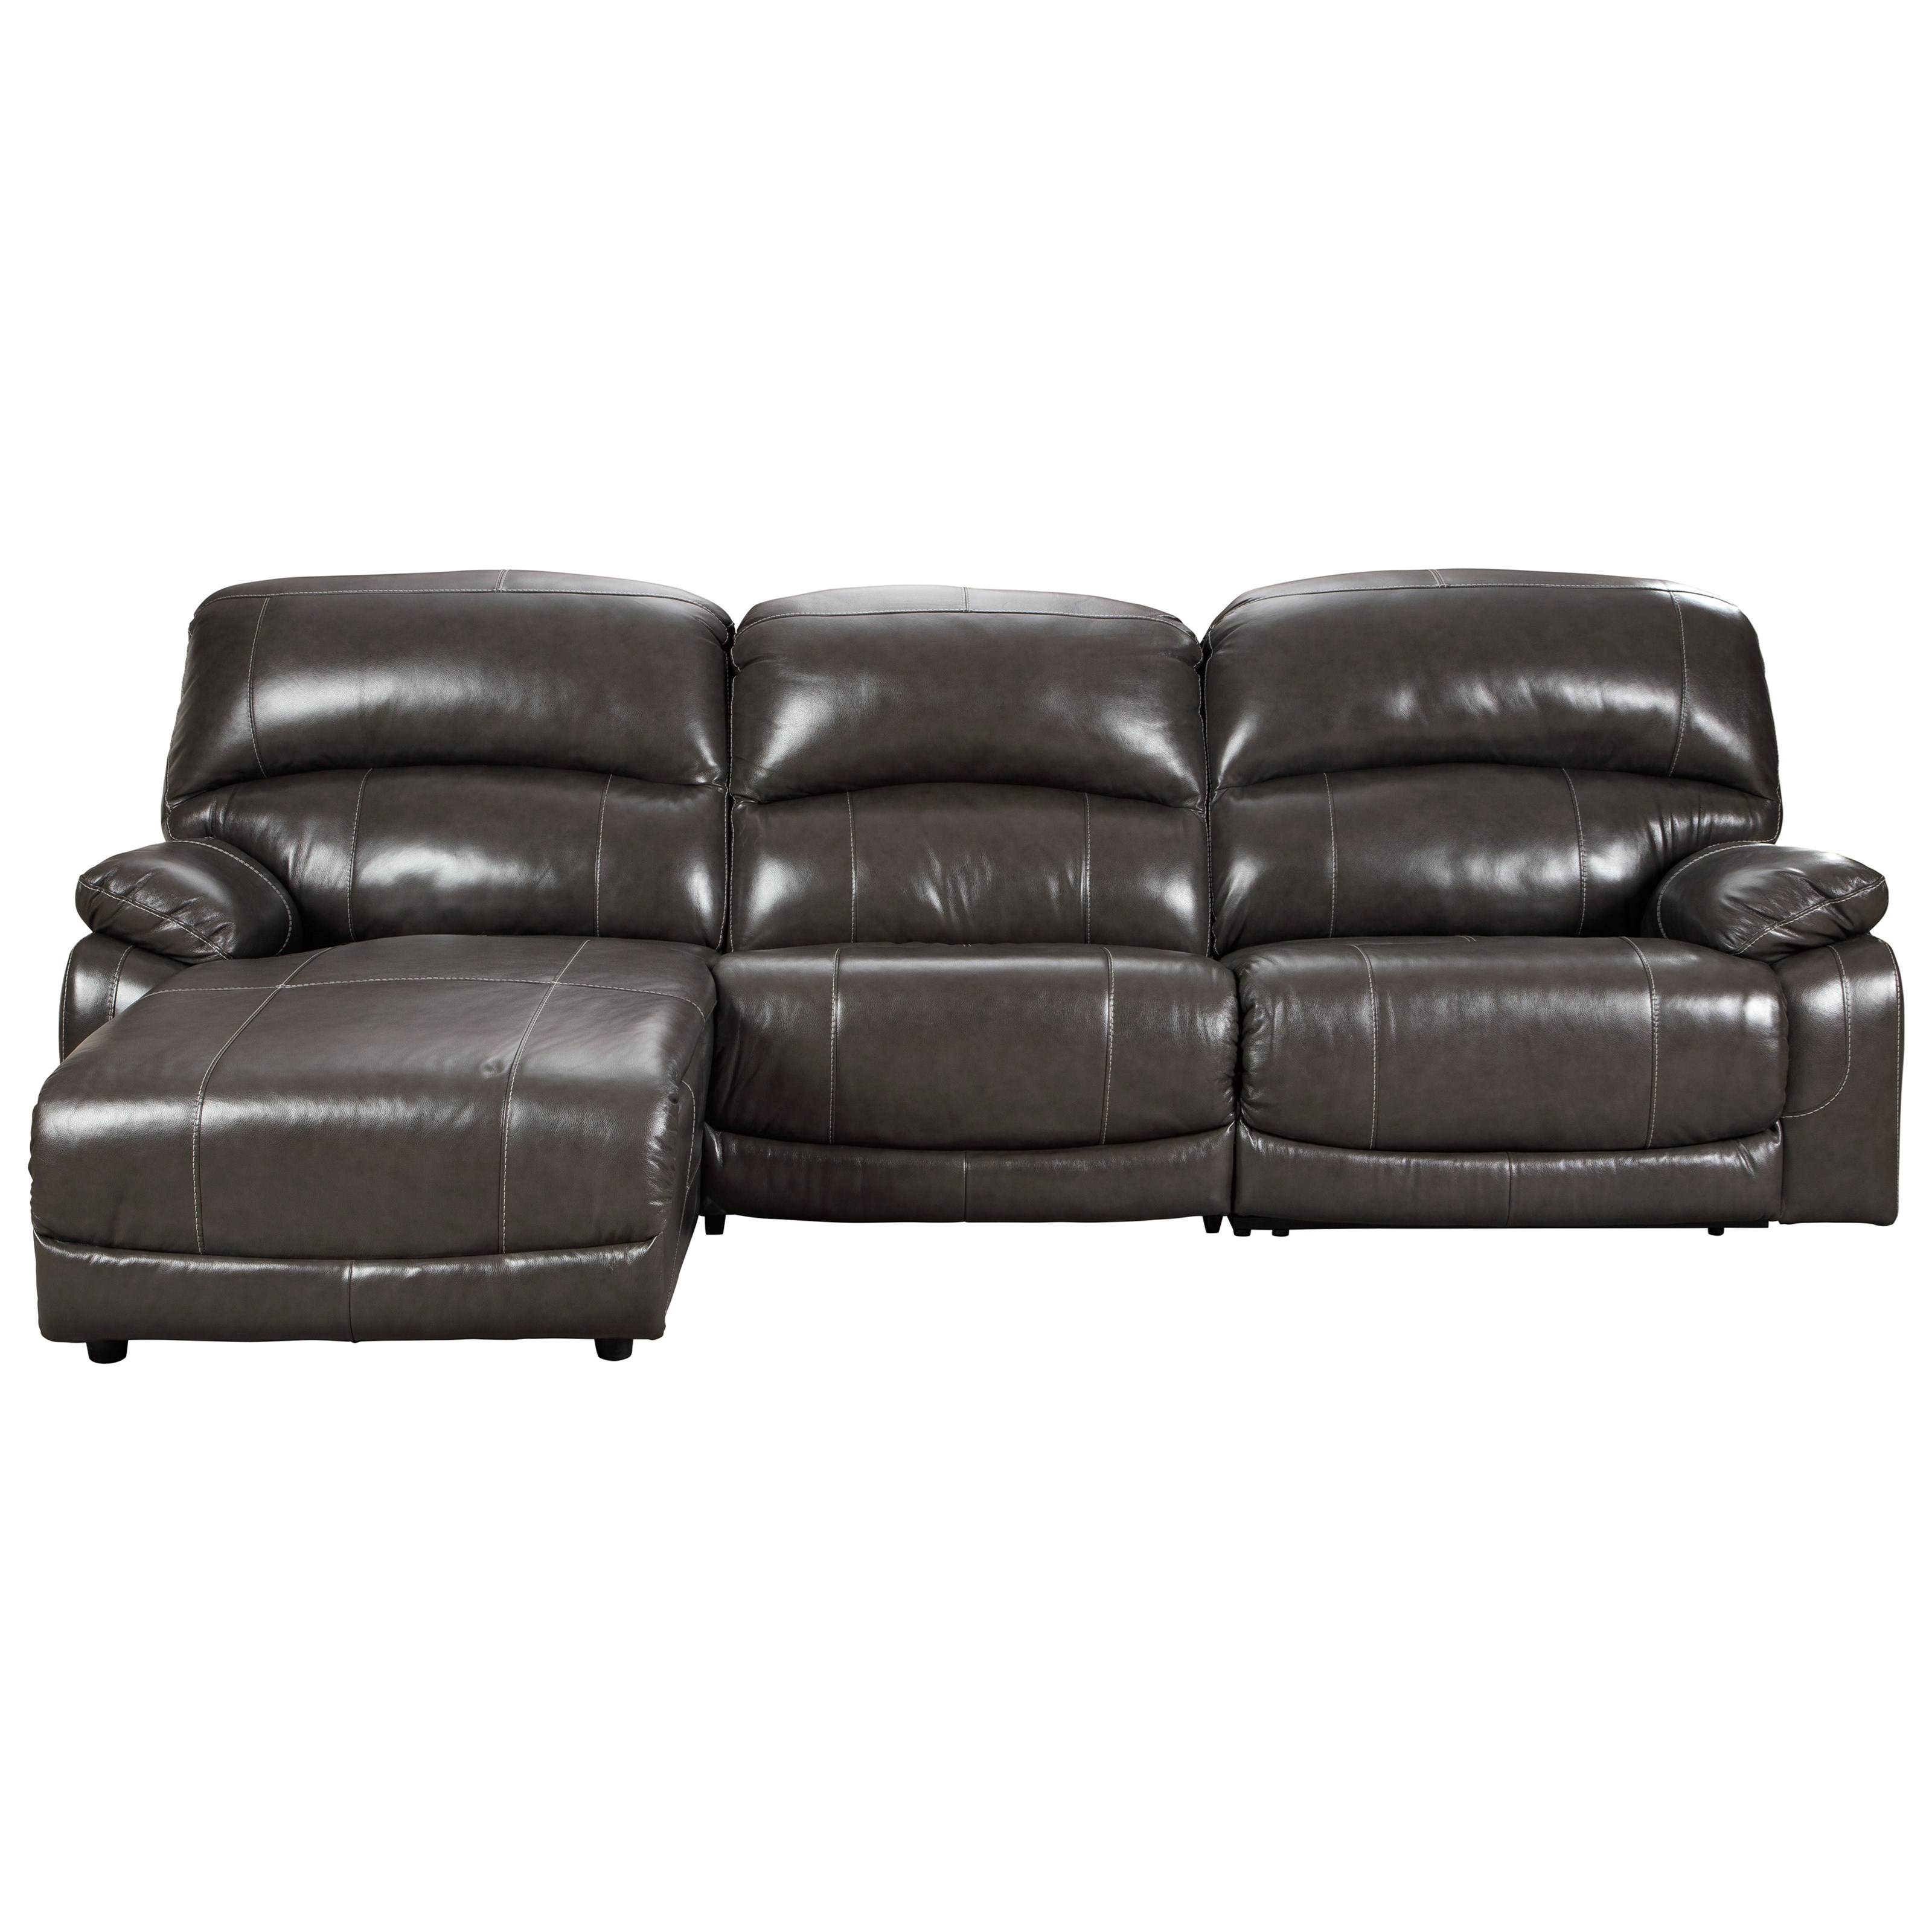 Hallstrung 3-Piece Reclining Sectional with Chaise by Signature Design by Ashley at Value City Furniture